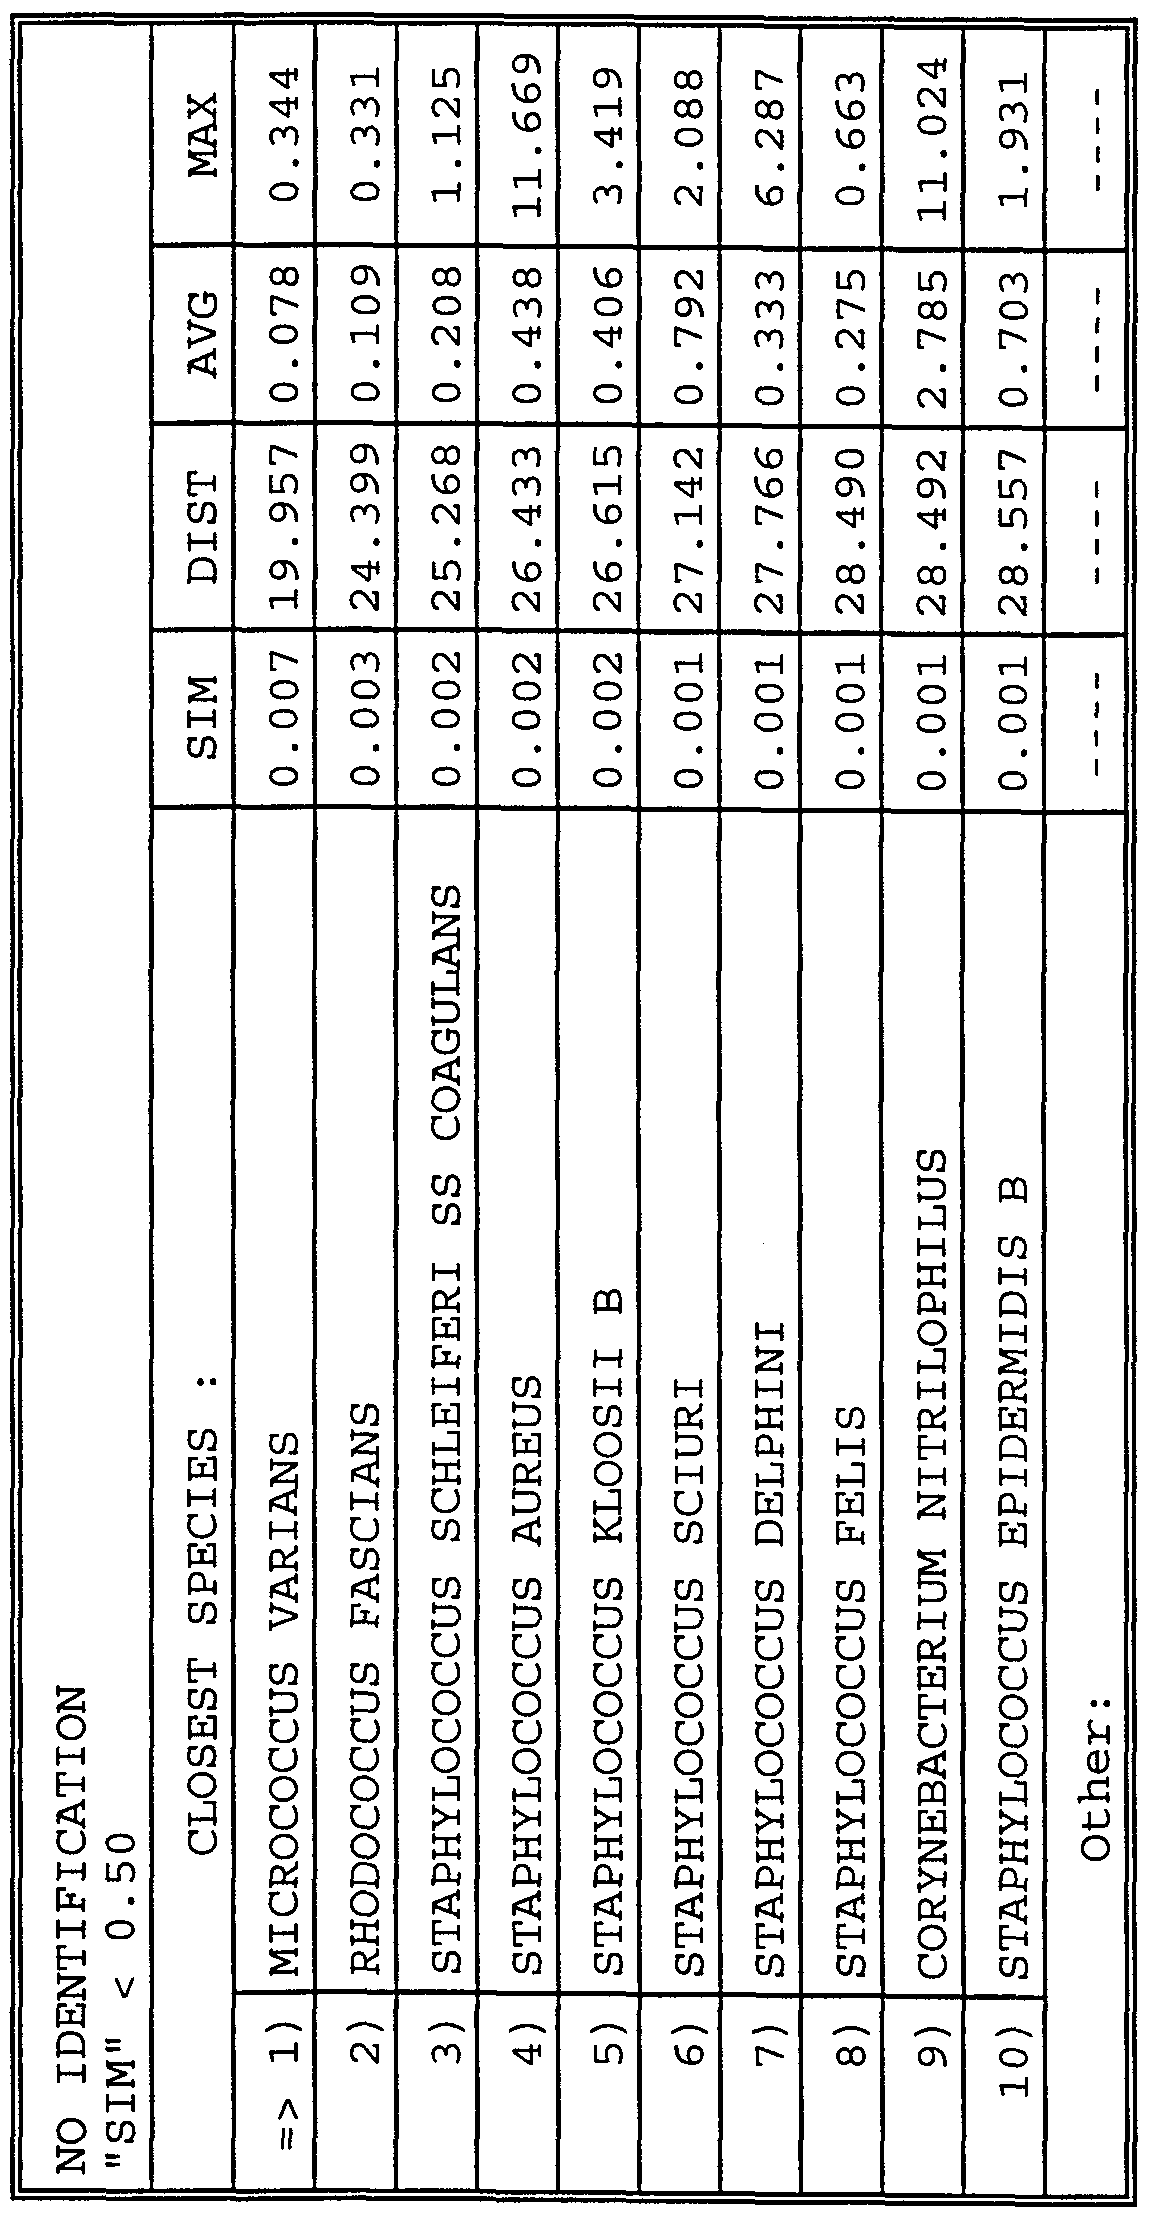 WO1998032872A1 - ENZYMATIC CONVERSION OF α-HYDROXYNITRILES TO THE